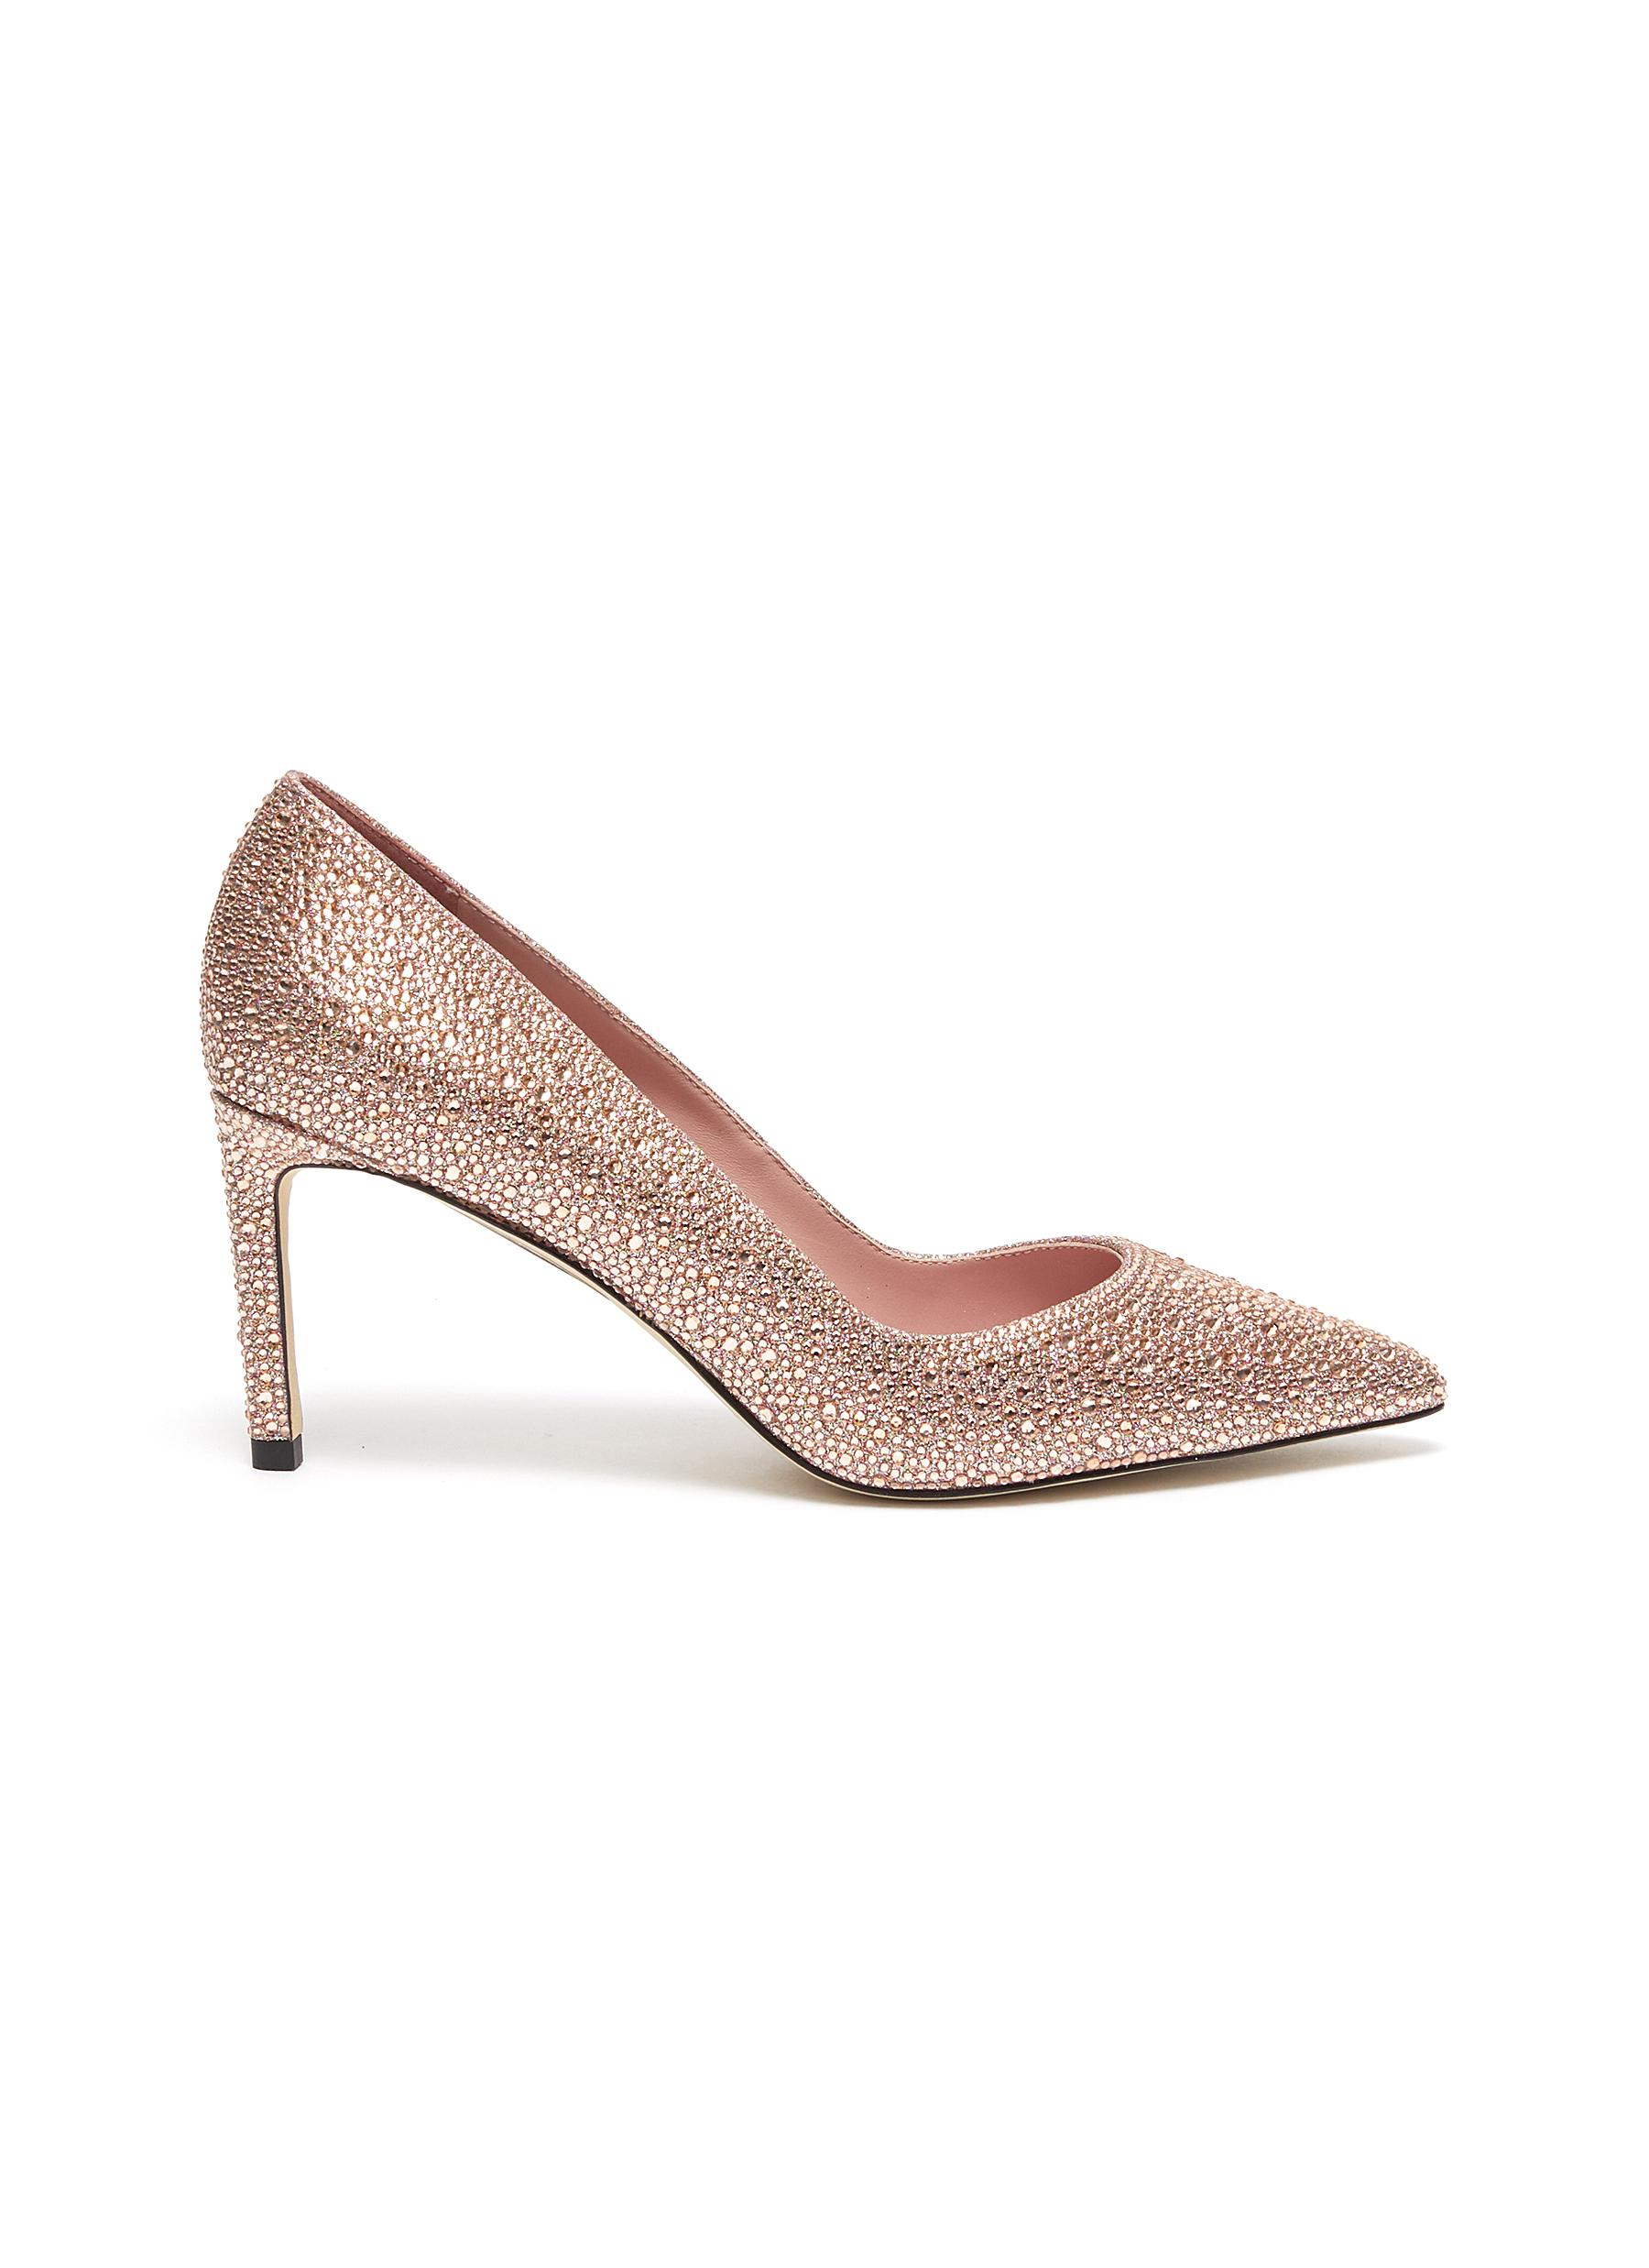 Renata strass glitter pumps by Pedder Red